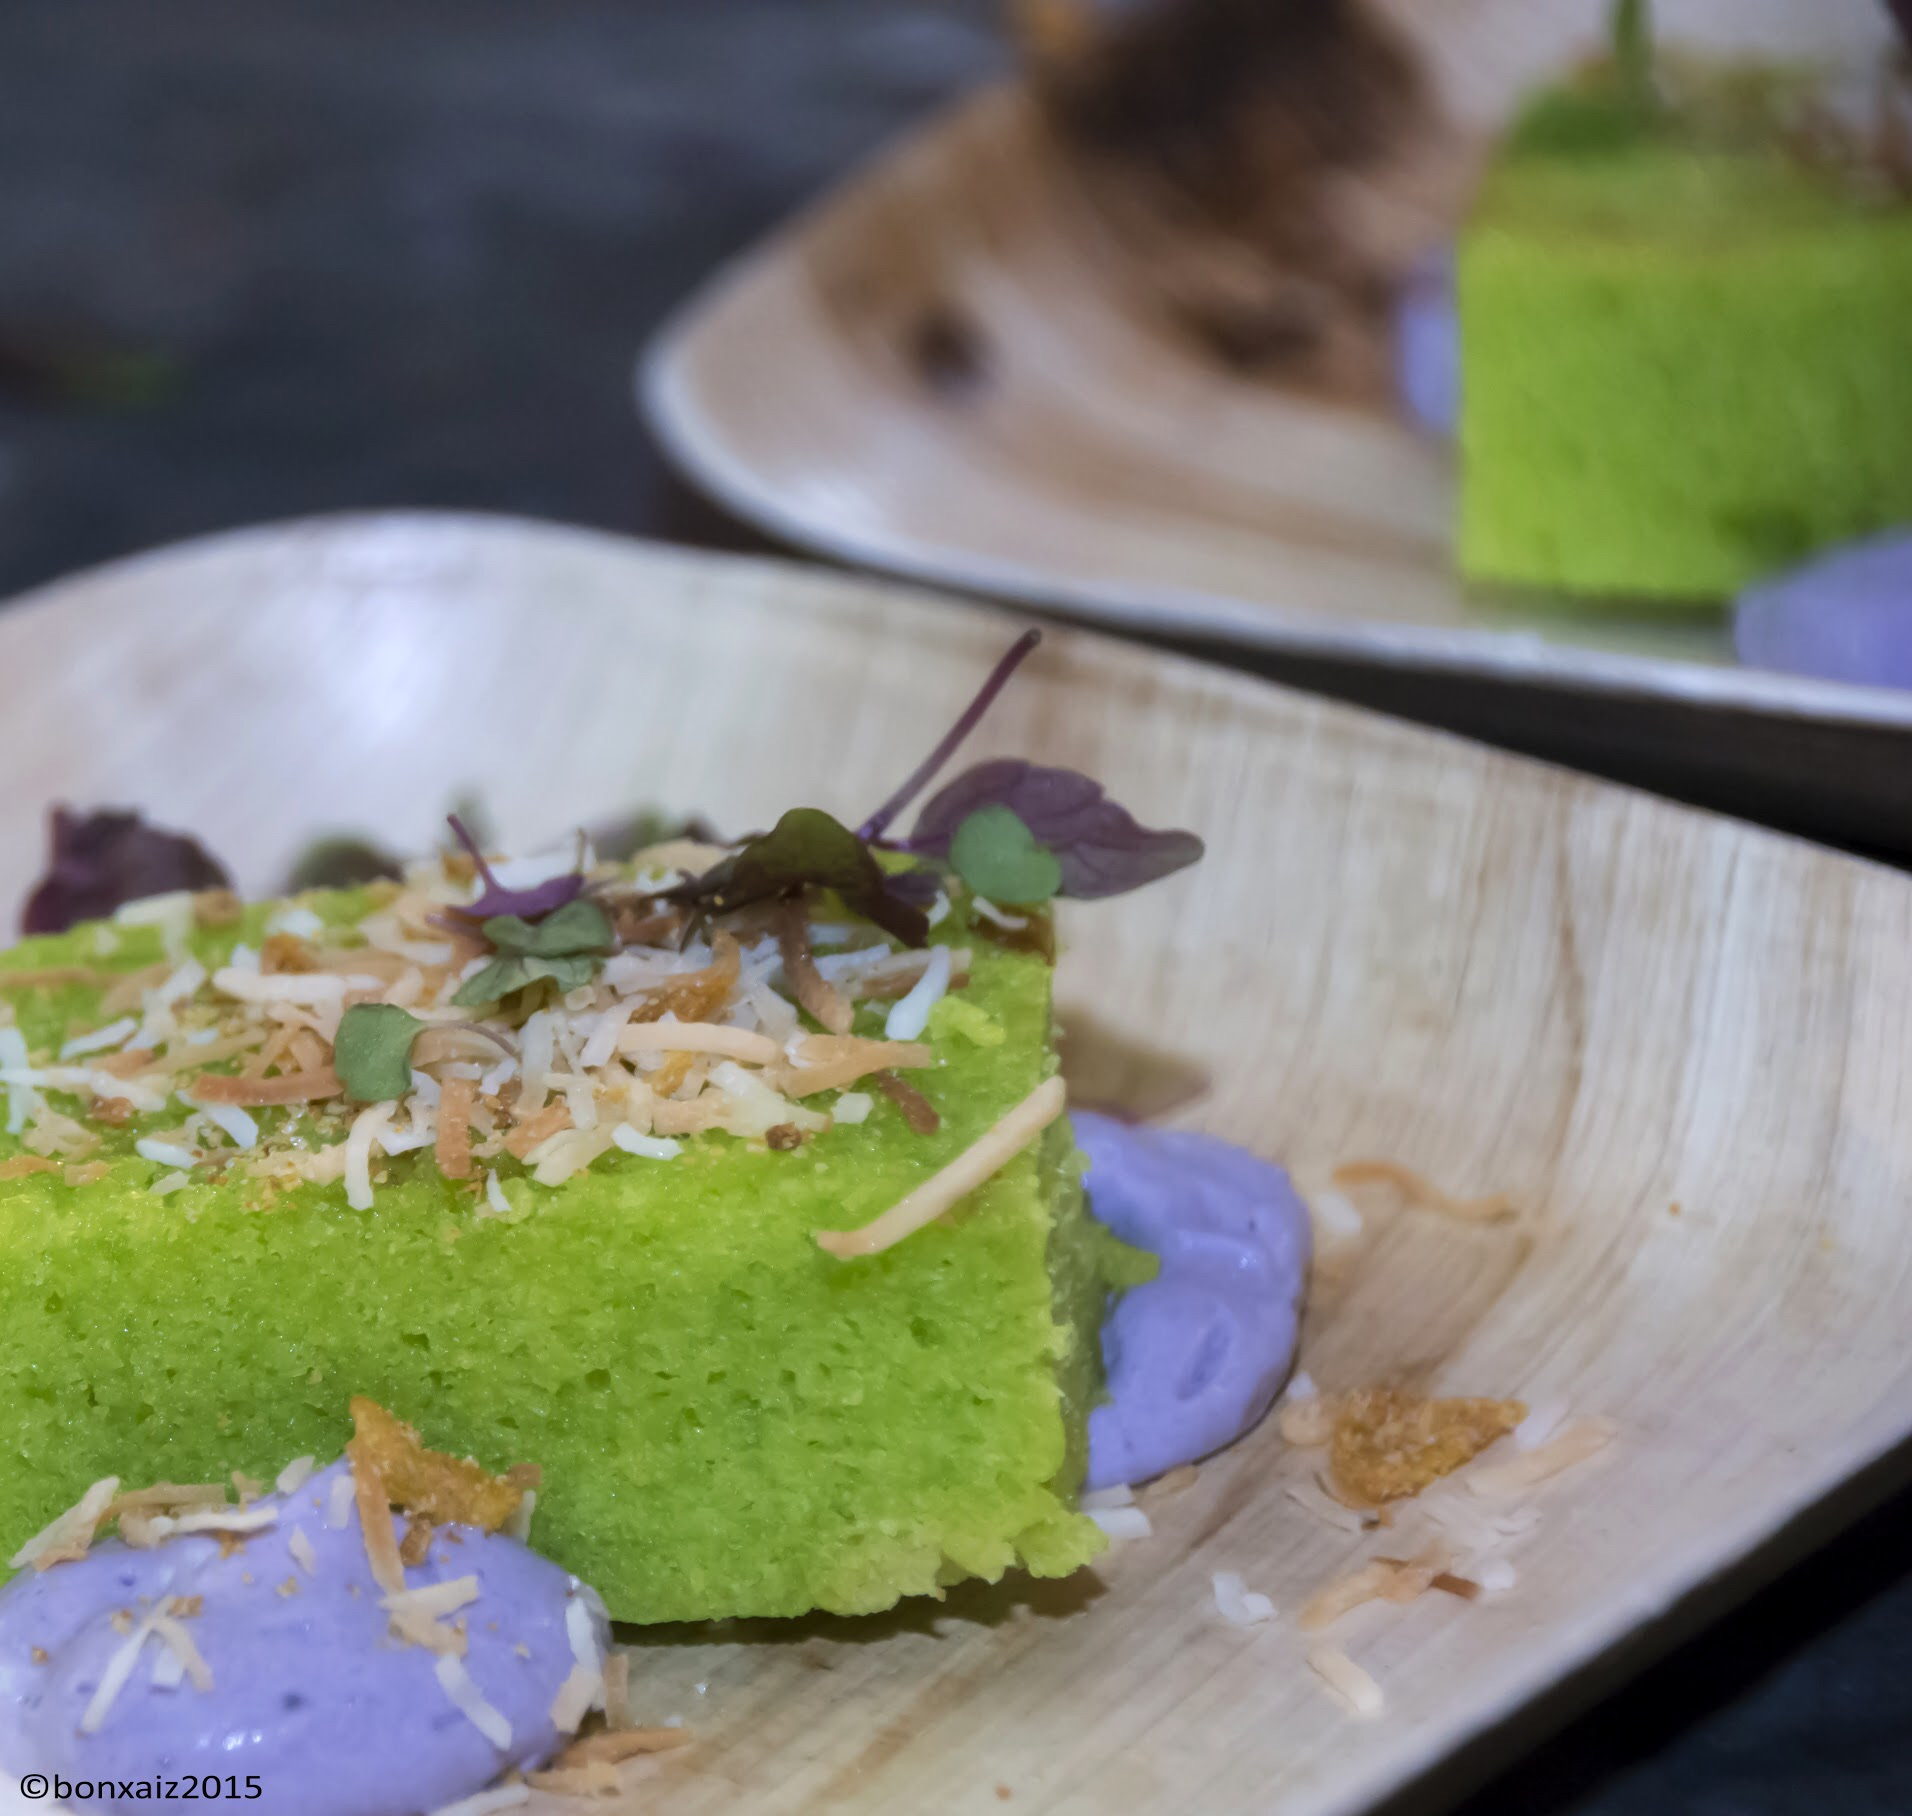 Chef Bryan Collante's olive oil cake with toasted coconut shreds, microgreens and ube macapuno foam. Bryan is the chef de cuisine at Michelin Bib Gourmand restaurant Untitled Supper Club in Chicago's River North.Photo credit: Gen Odon